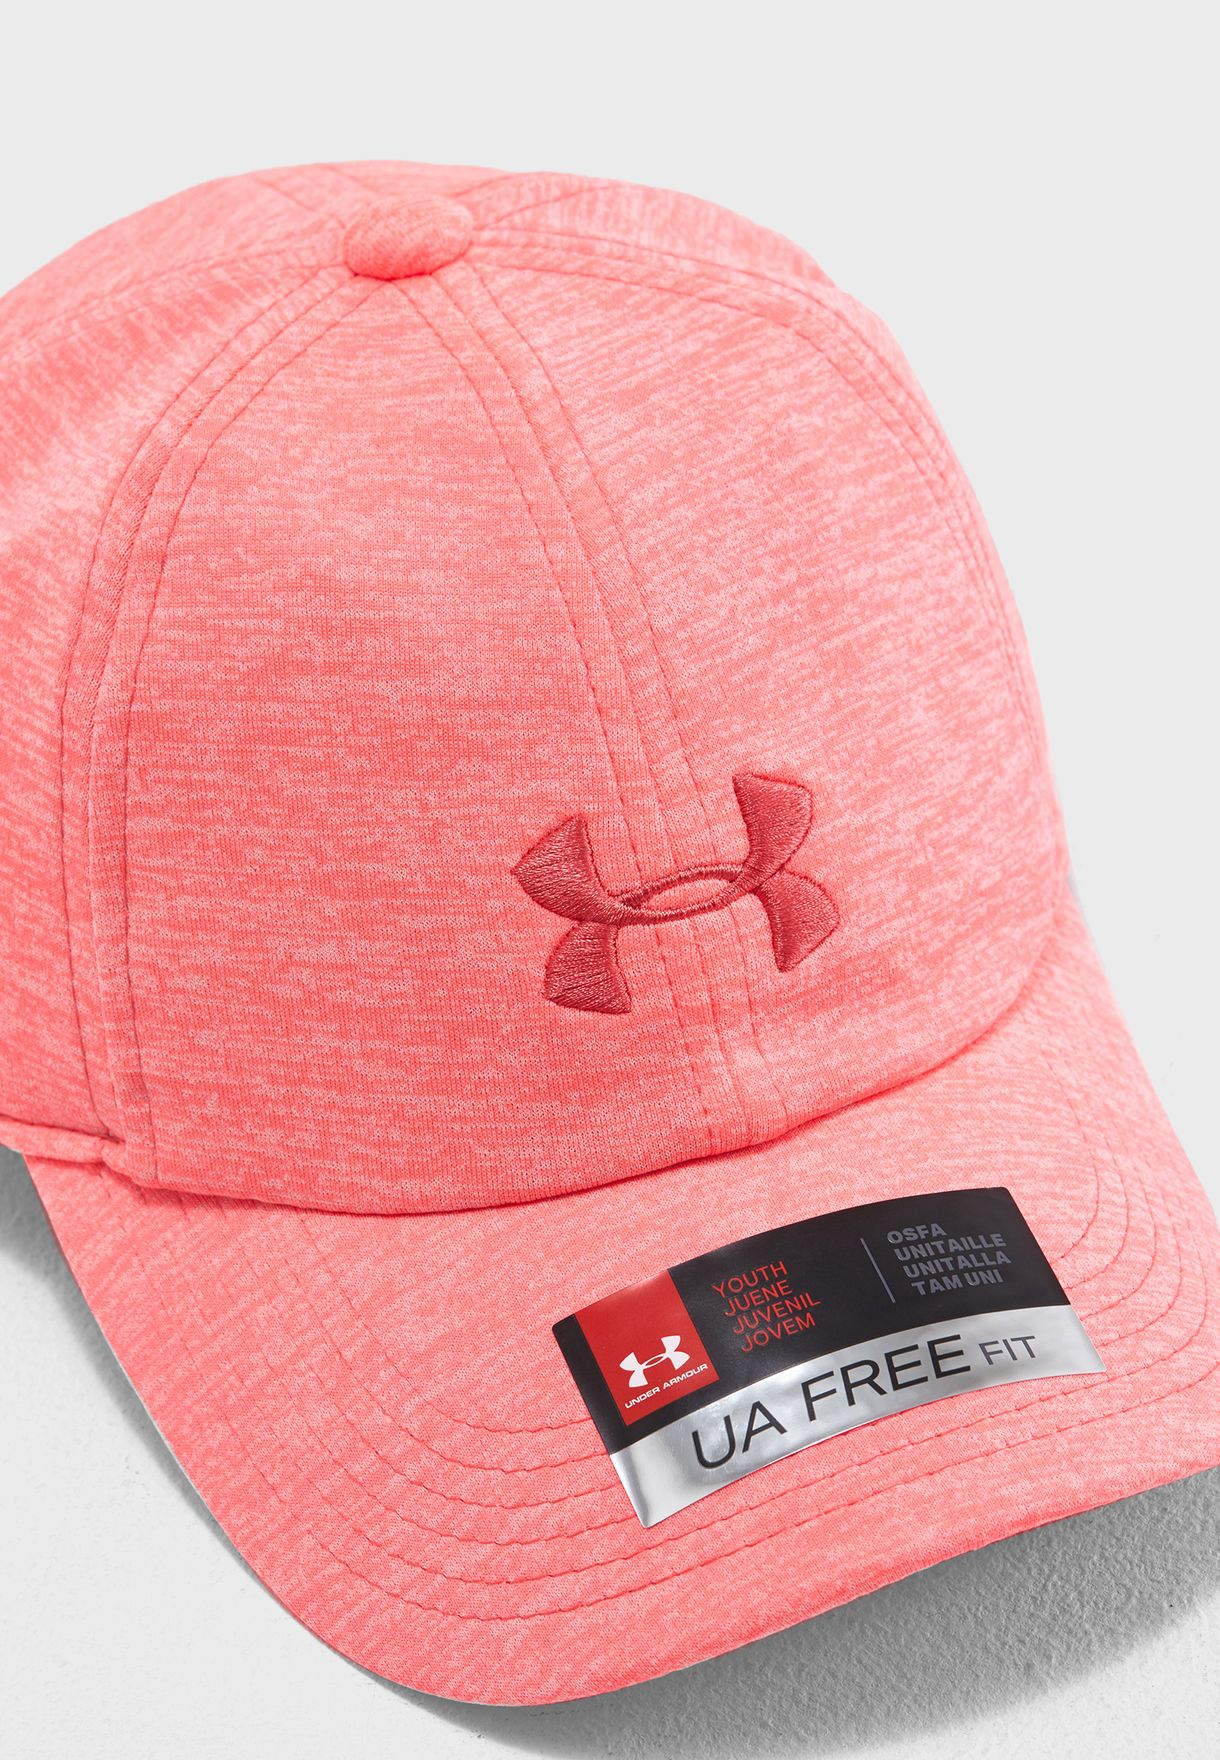 72381bbdddba6 Shop Under Armour pink Kids Twisted Renegade cap 1306337-819 for ...